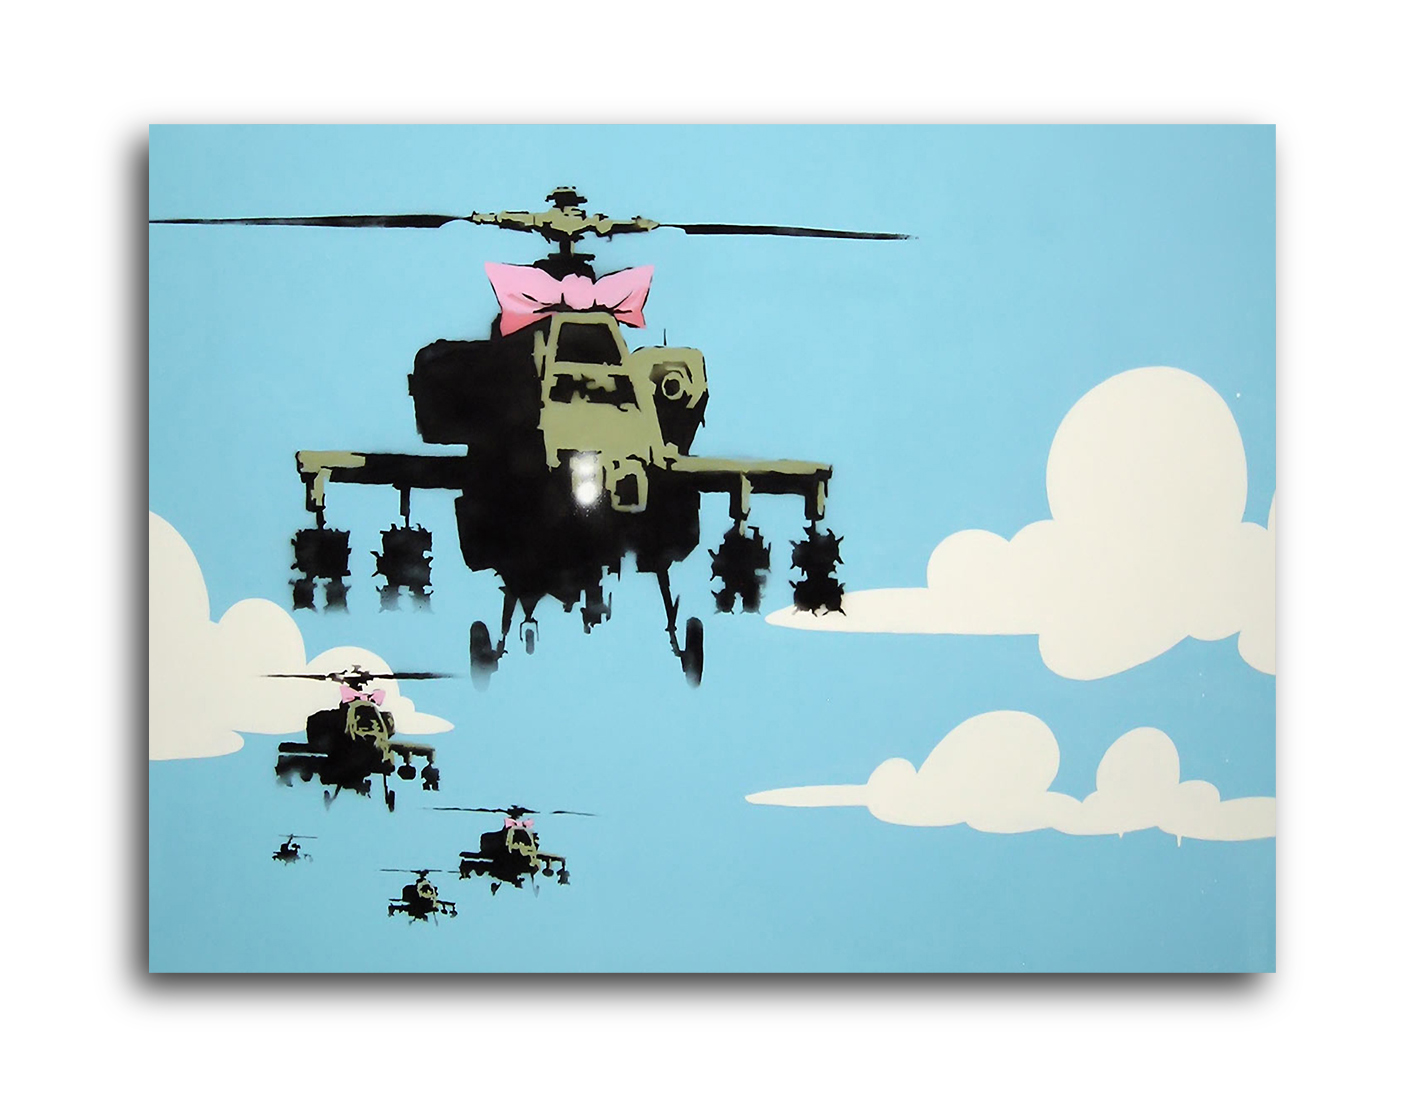 """Banksy Happy Choppers (Helicopters) Brushed Aluminum Metal Print (14"""" x 11"""") by Pingotopia Inc."""